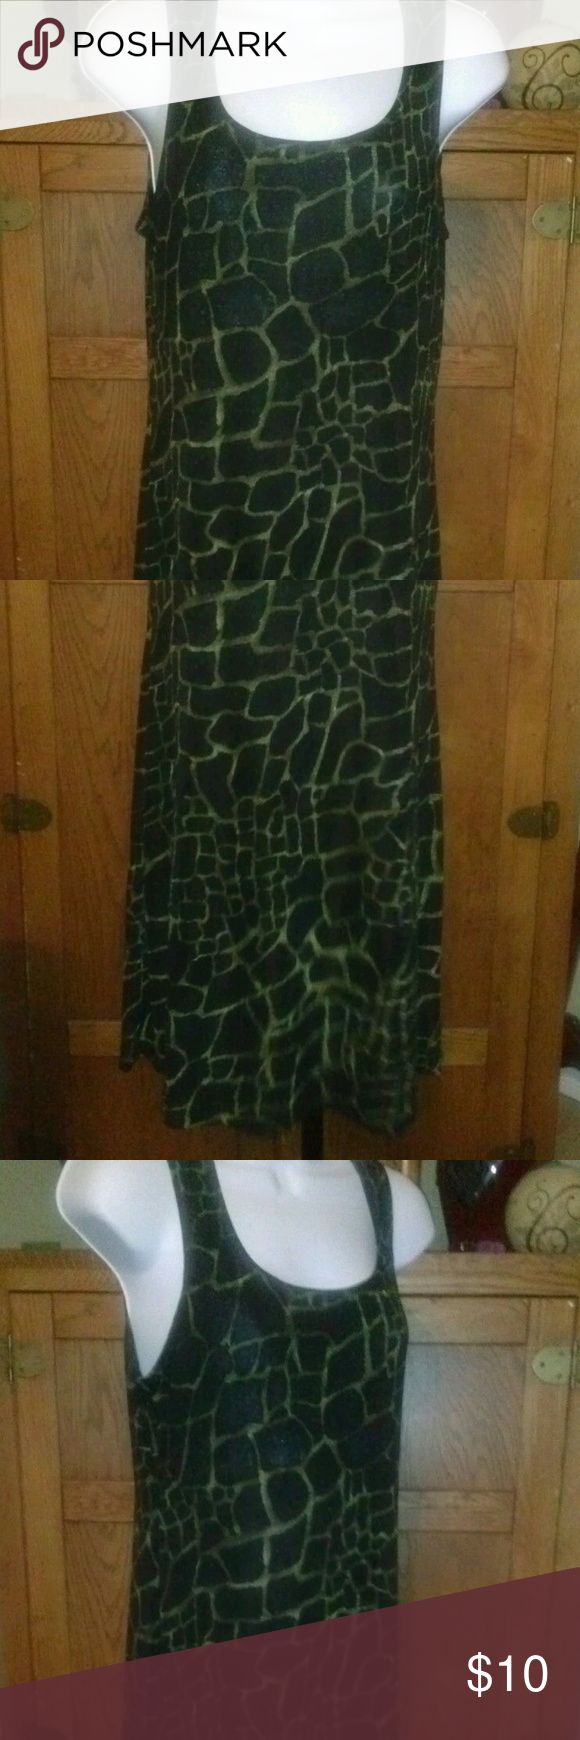 Animal Print Tank Travel Dress Beach Cruise Large Tank dress polyester and spandex for a nice stretch and comfy fit with a giraffe print. Very good condition. Thank you for looking! Knapp Studio Dresses